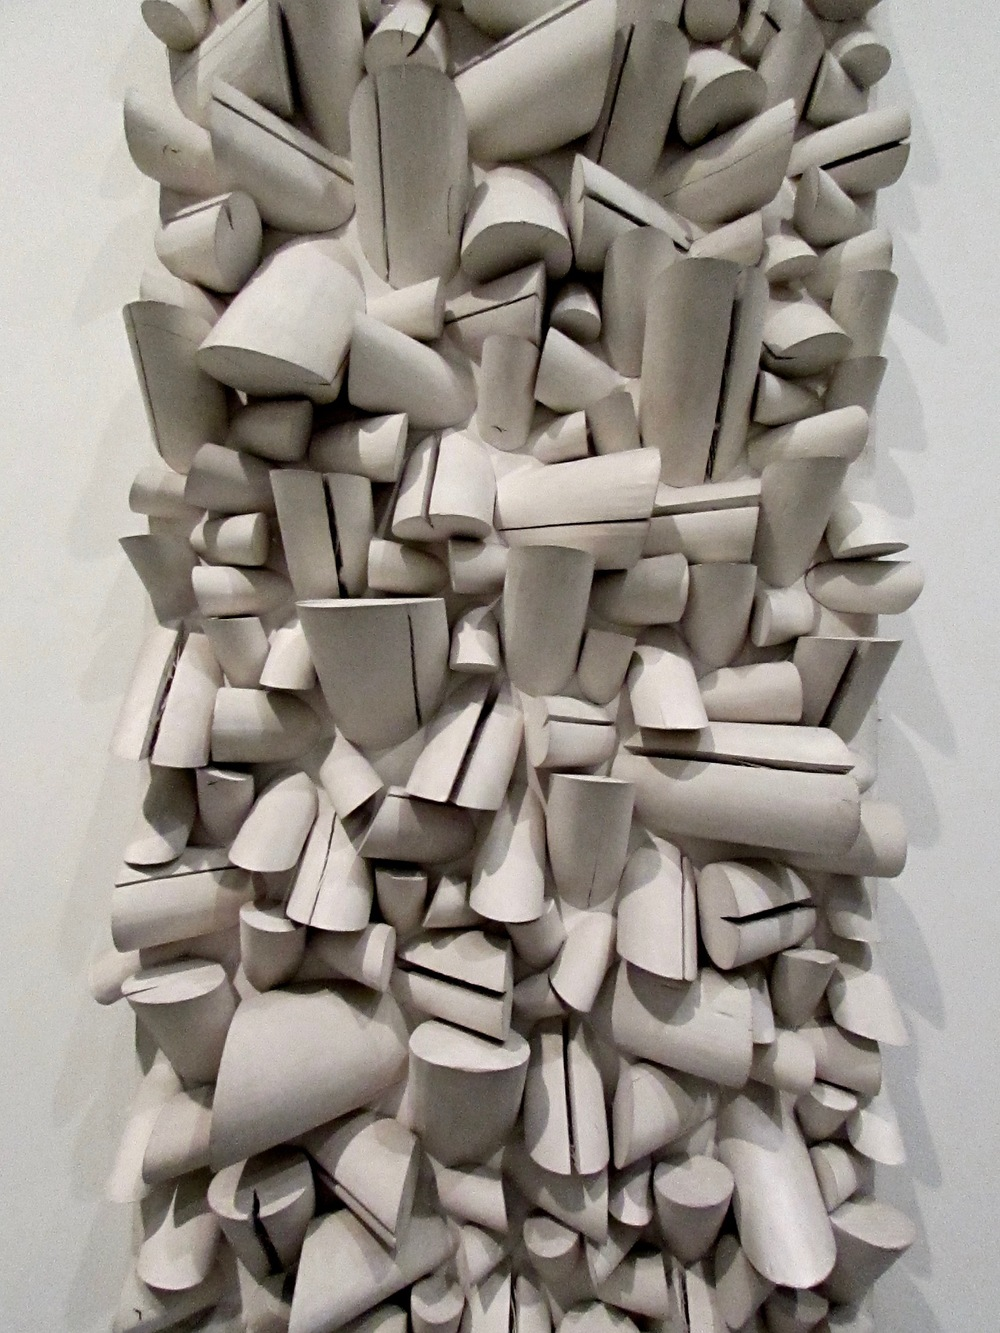 Large Split Relief No. 34/4/74 by Brazilian artist Sergio Camargo, 1964-5